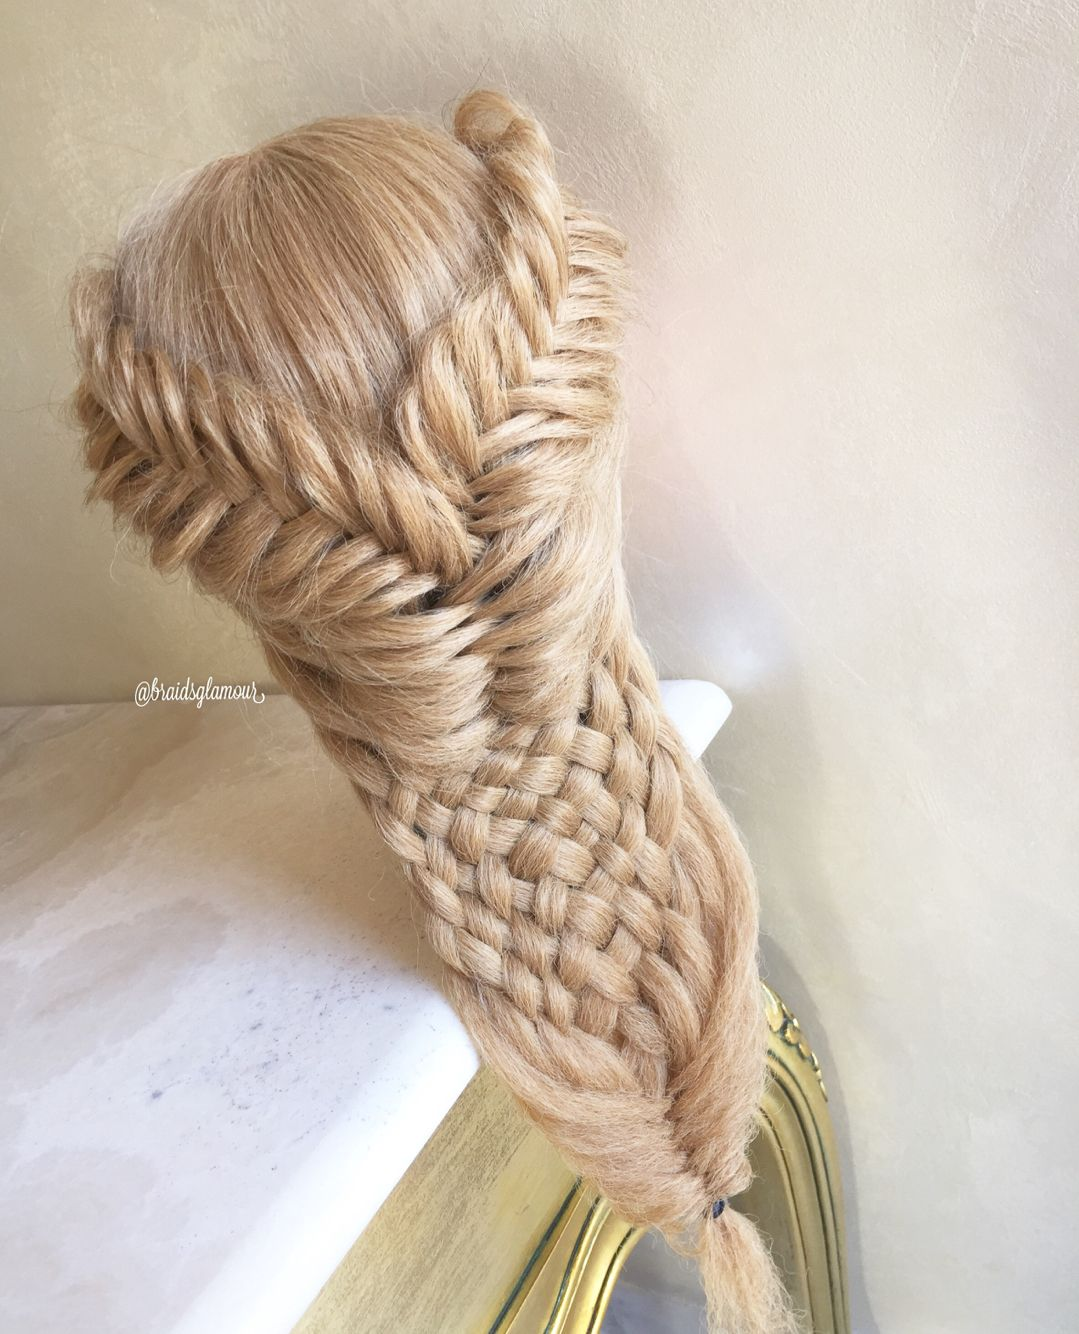 No Weave Just Do Cambree S Real Hair Natural Hairstyles For Kids Braided Hairstyles Natural Hair Styles